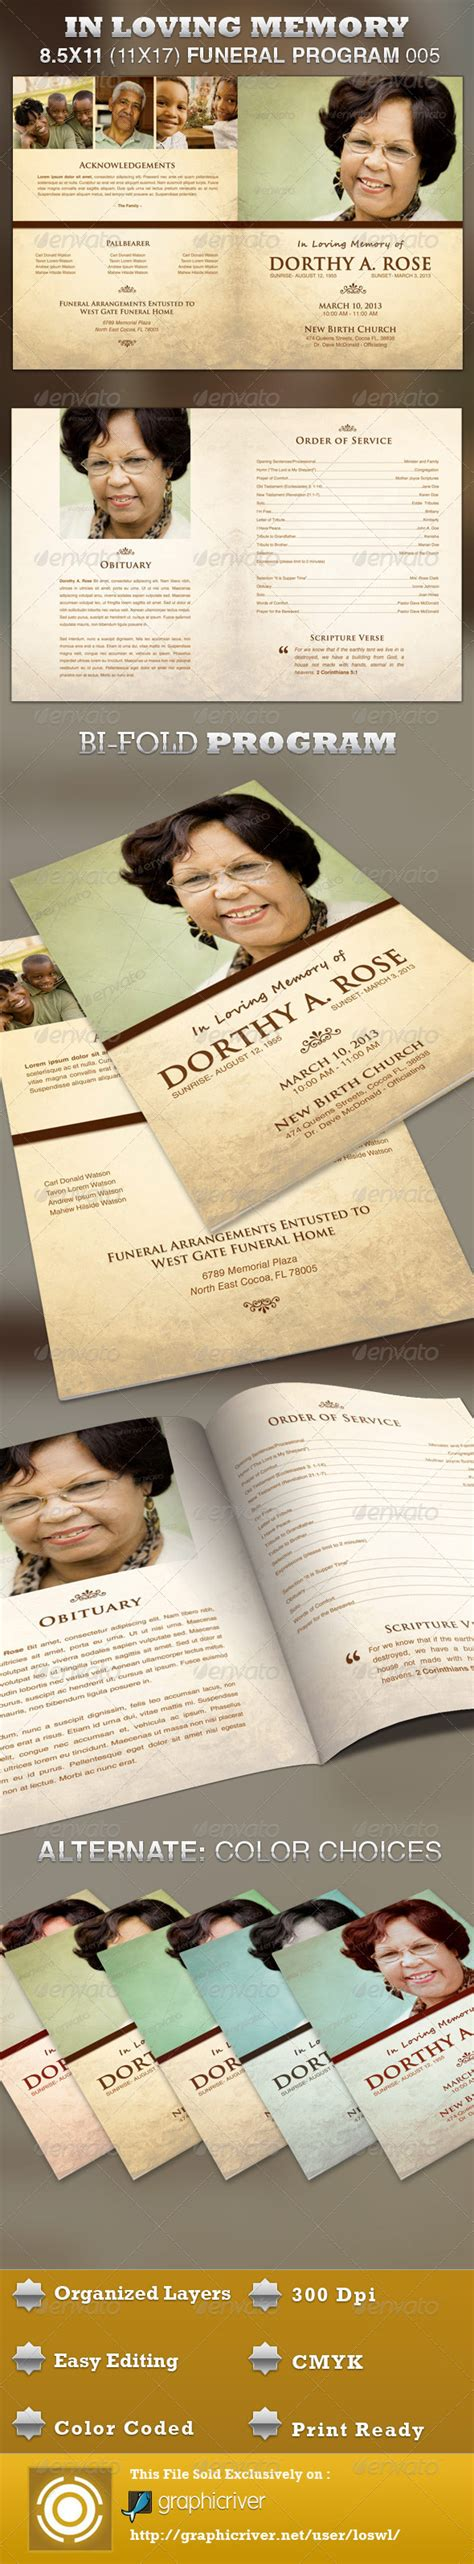 http graphicriver net item funeral service business card template 10998645 in loving memory funeral program template 005 graphicriver